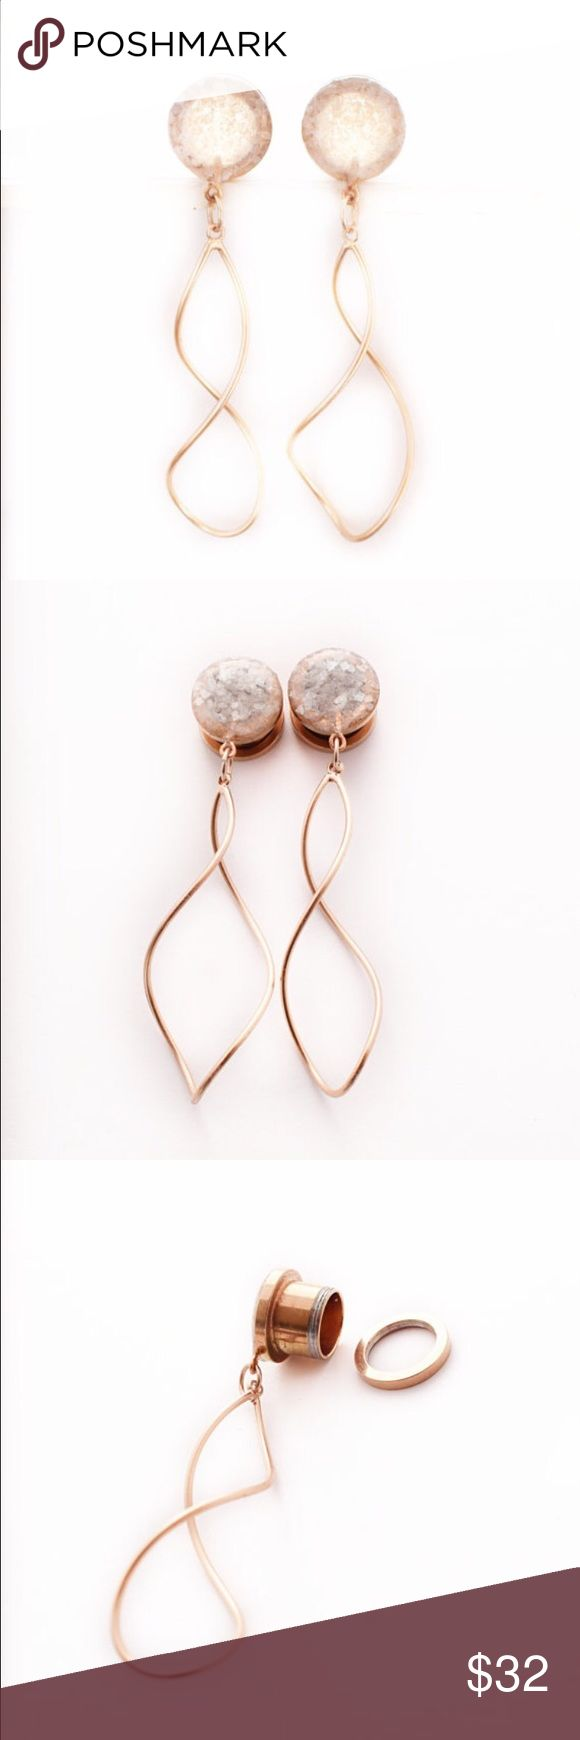 Pearl Crushed Glass Rose Gold Dangle Plugs A pair of unique and stunningly gorgeous handmade pearl crushed glass with dangle on rose gold plug